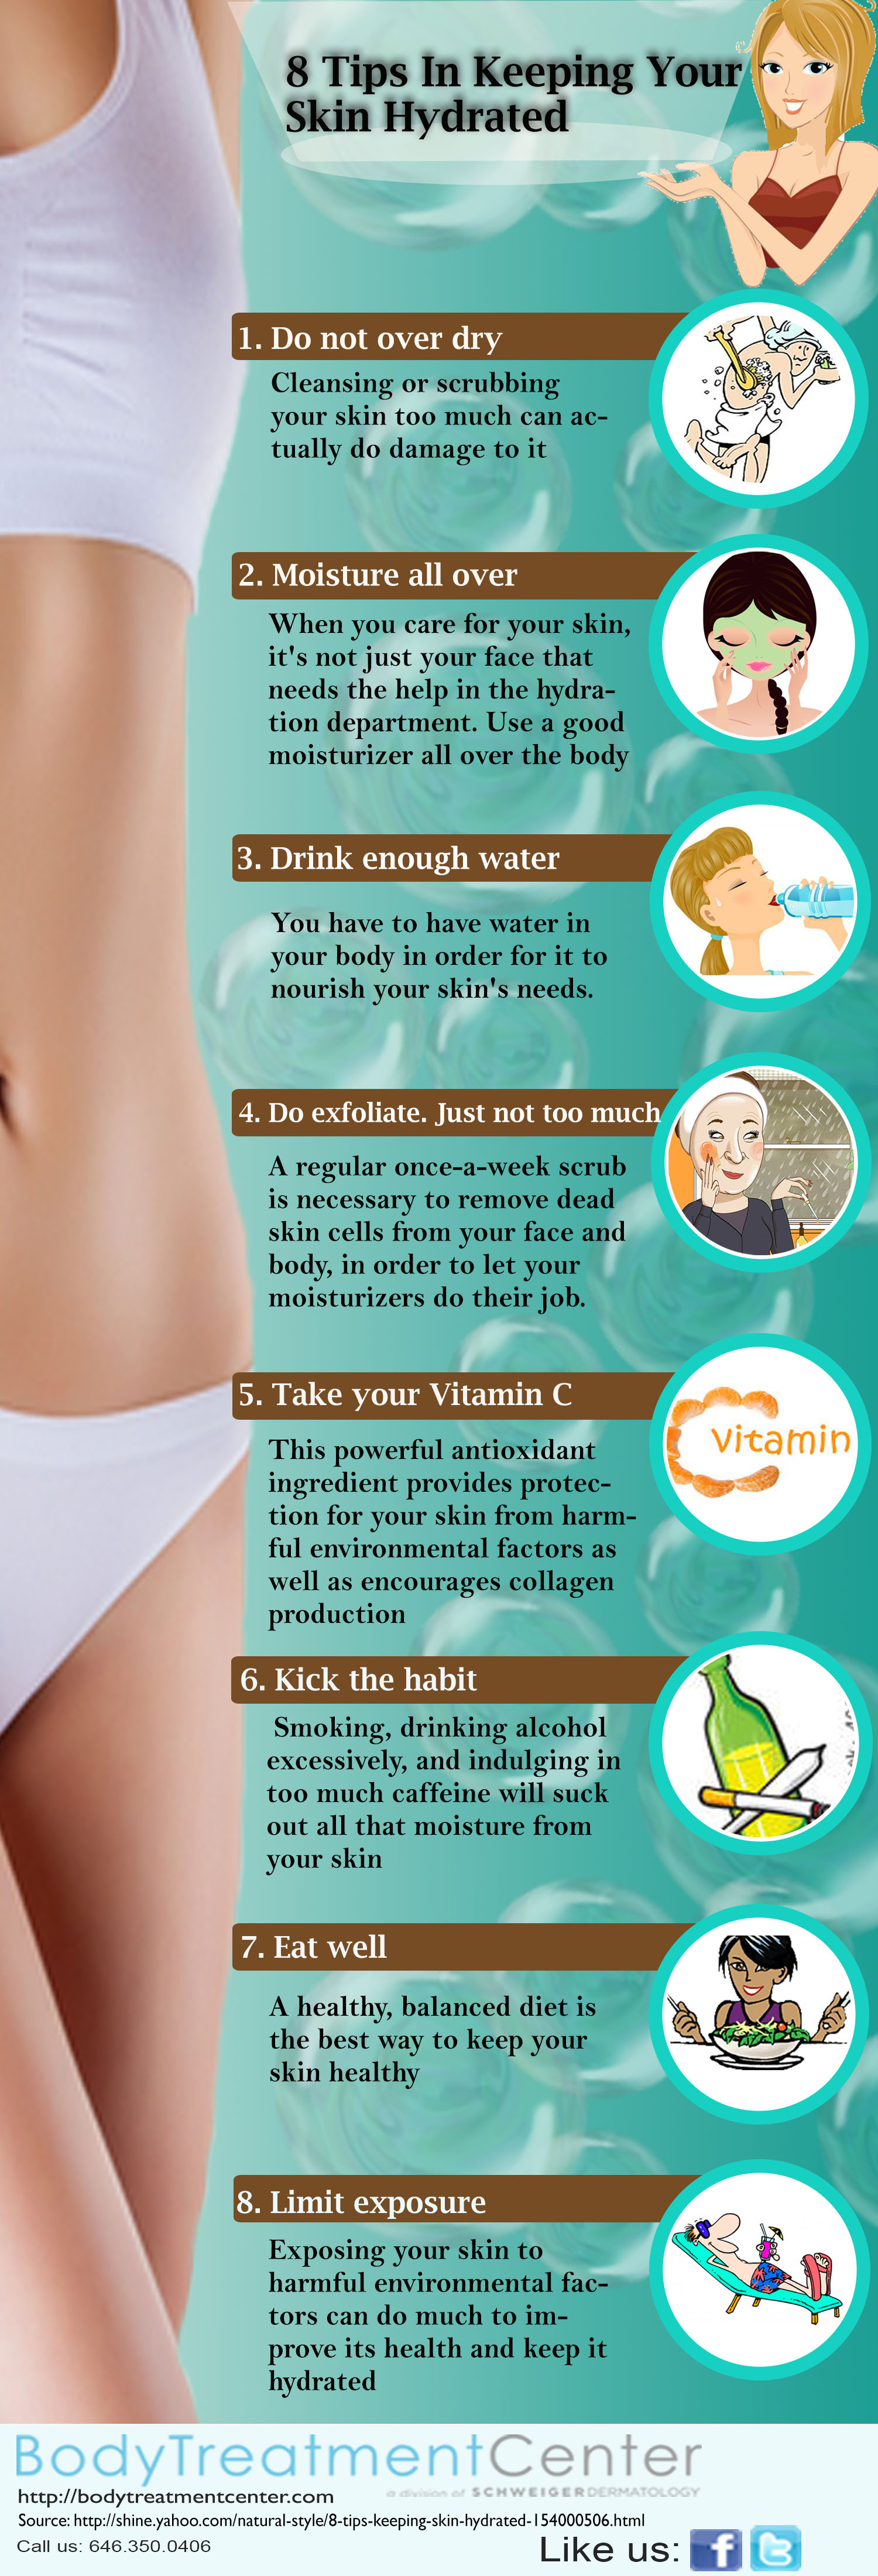 Tips in Keeping Your Skin Hydrated Infographic